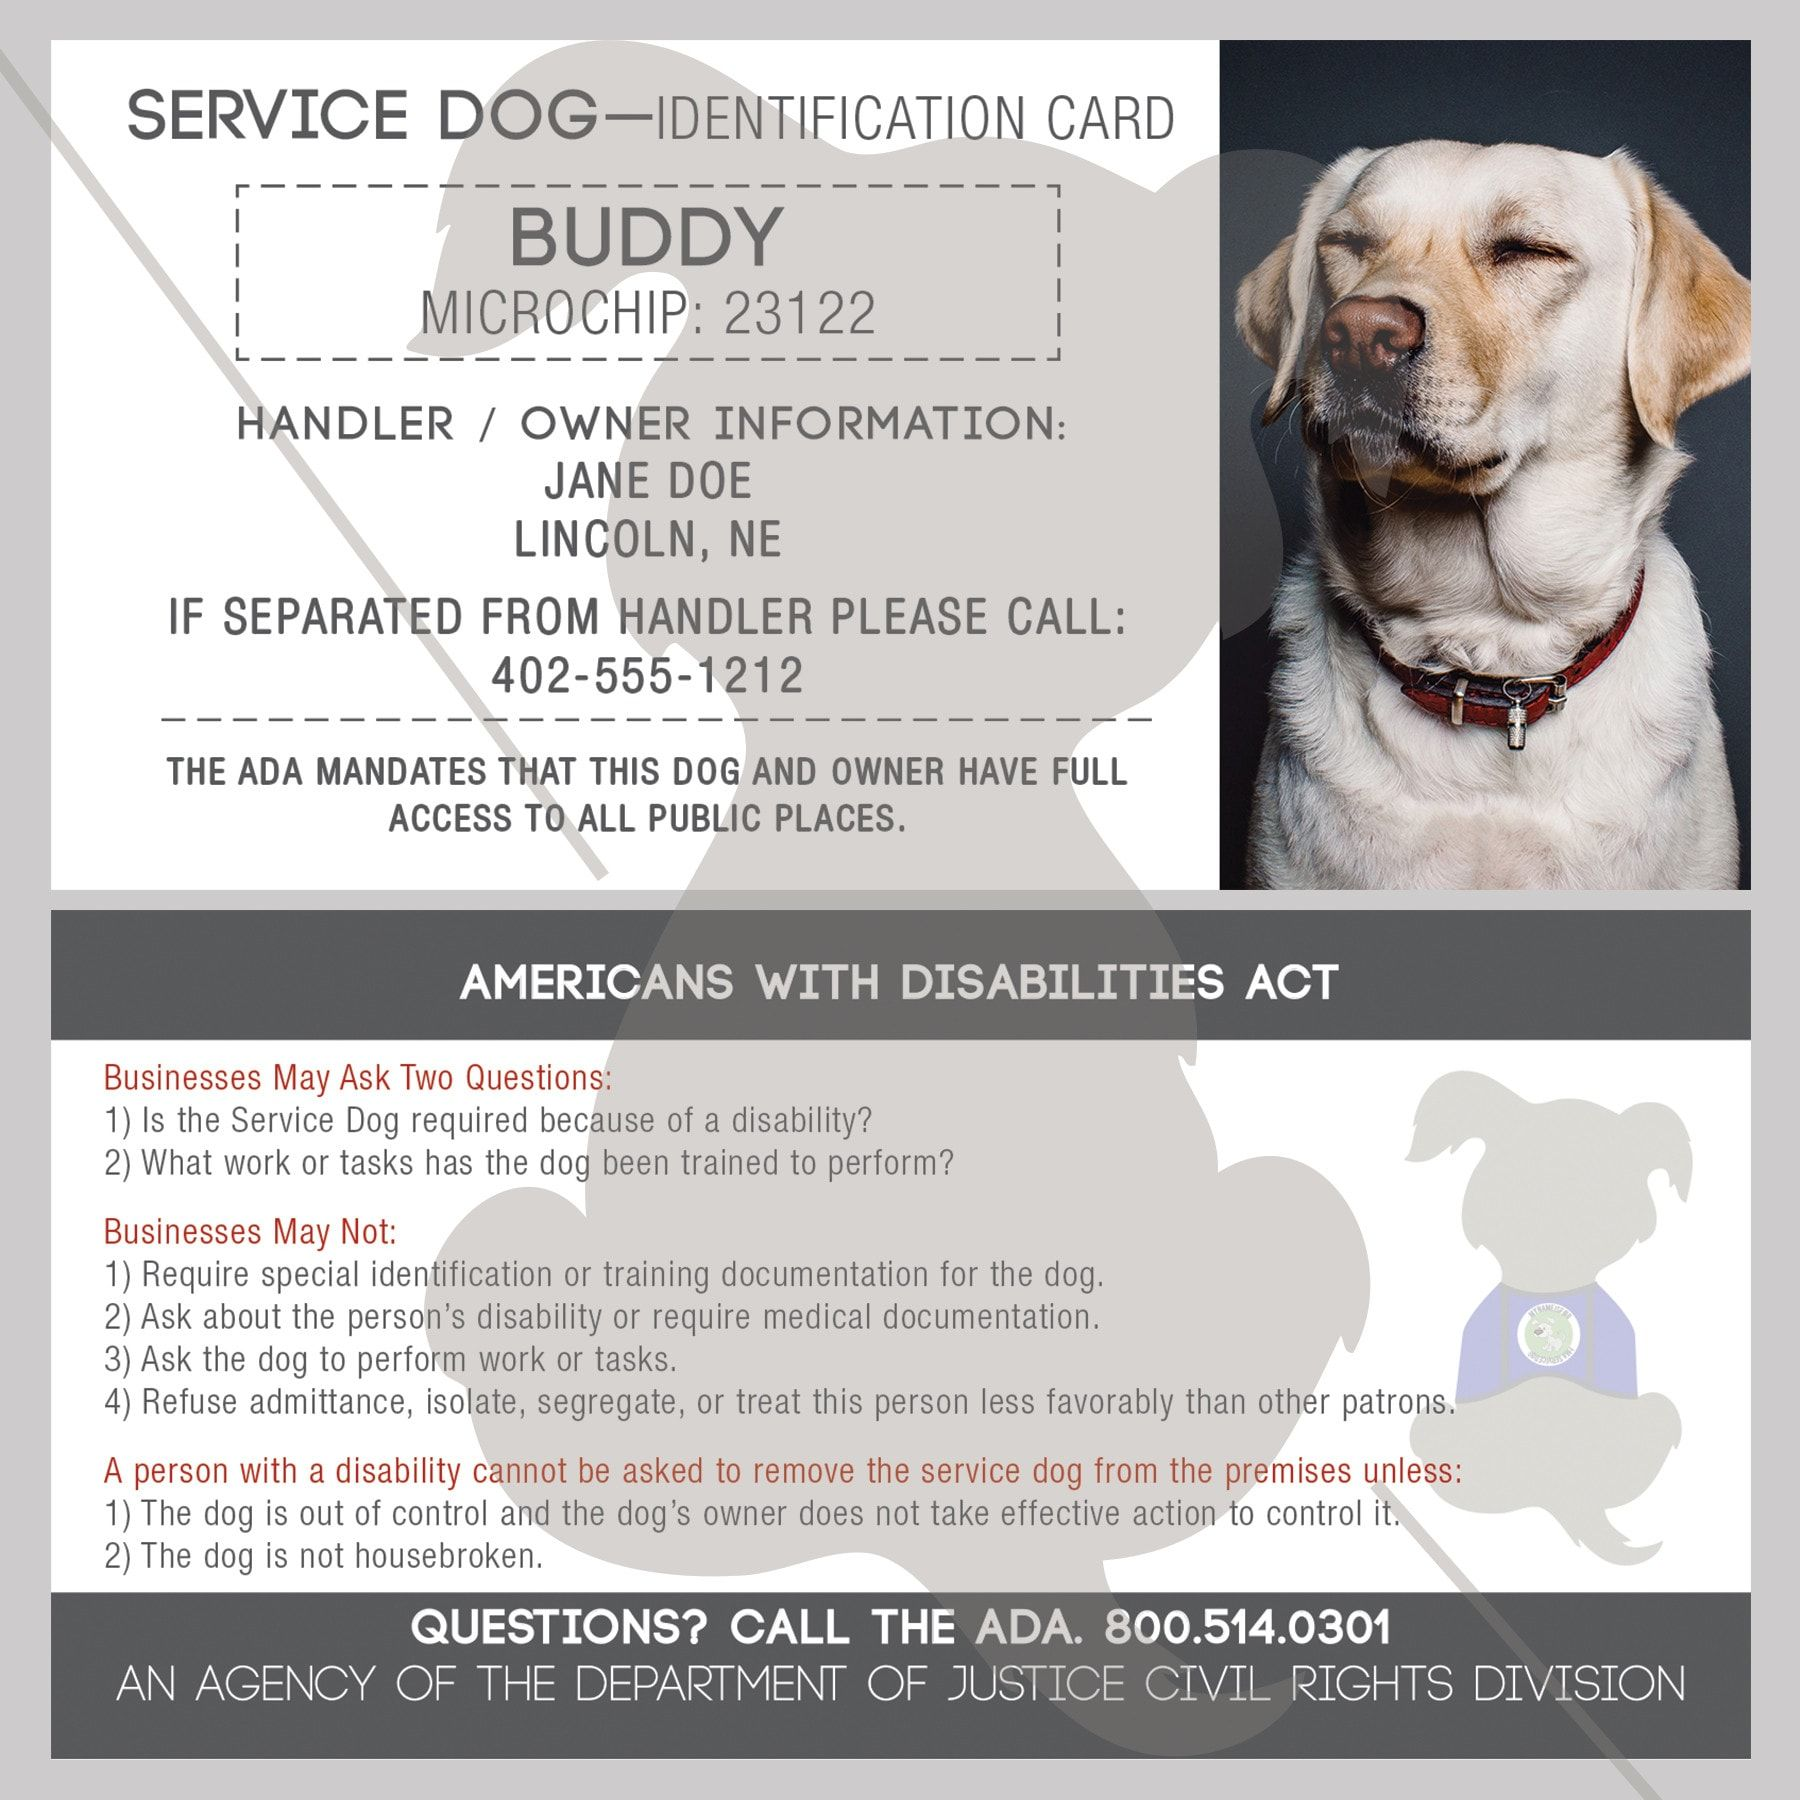 Id Card Service Dog With Holographic Security Seal Service